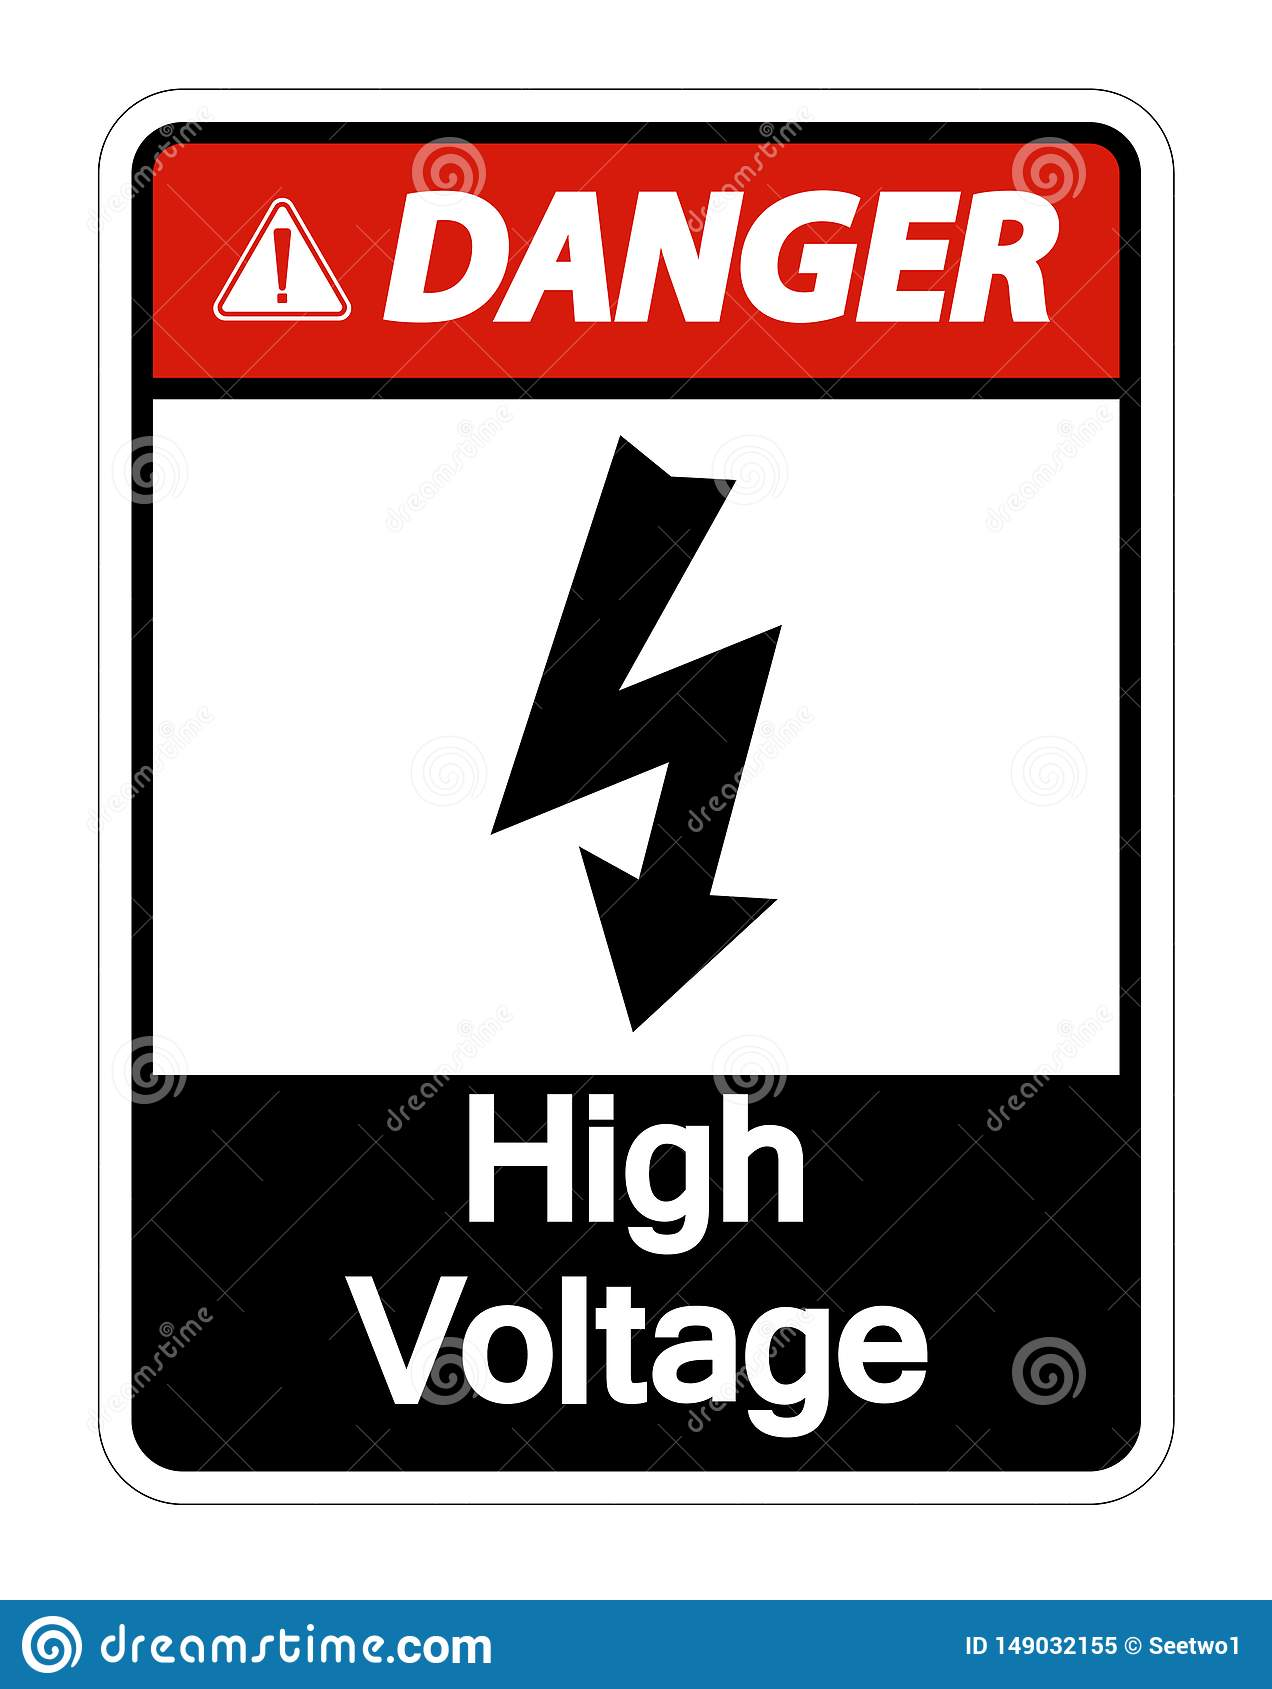 La haute tension de danger se connectent l isolat blanc de fond sur le fond blanc, illustration de vecteur